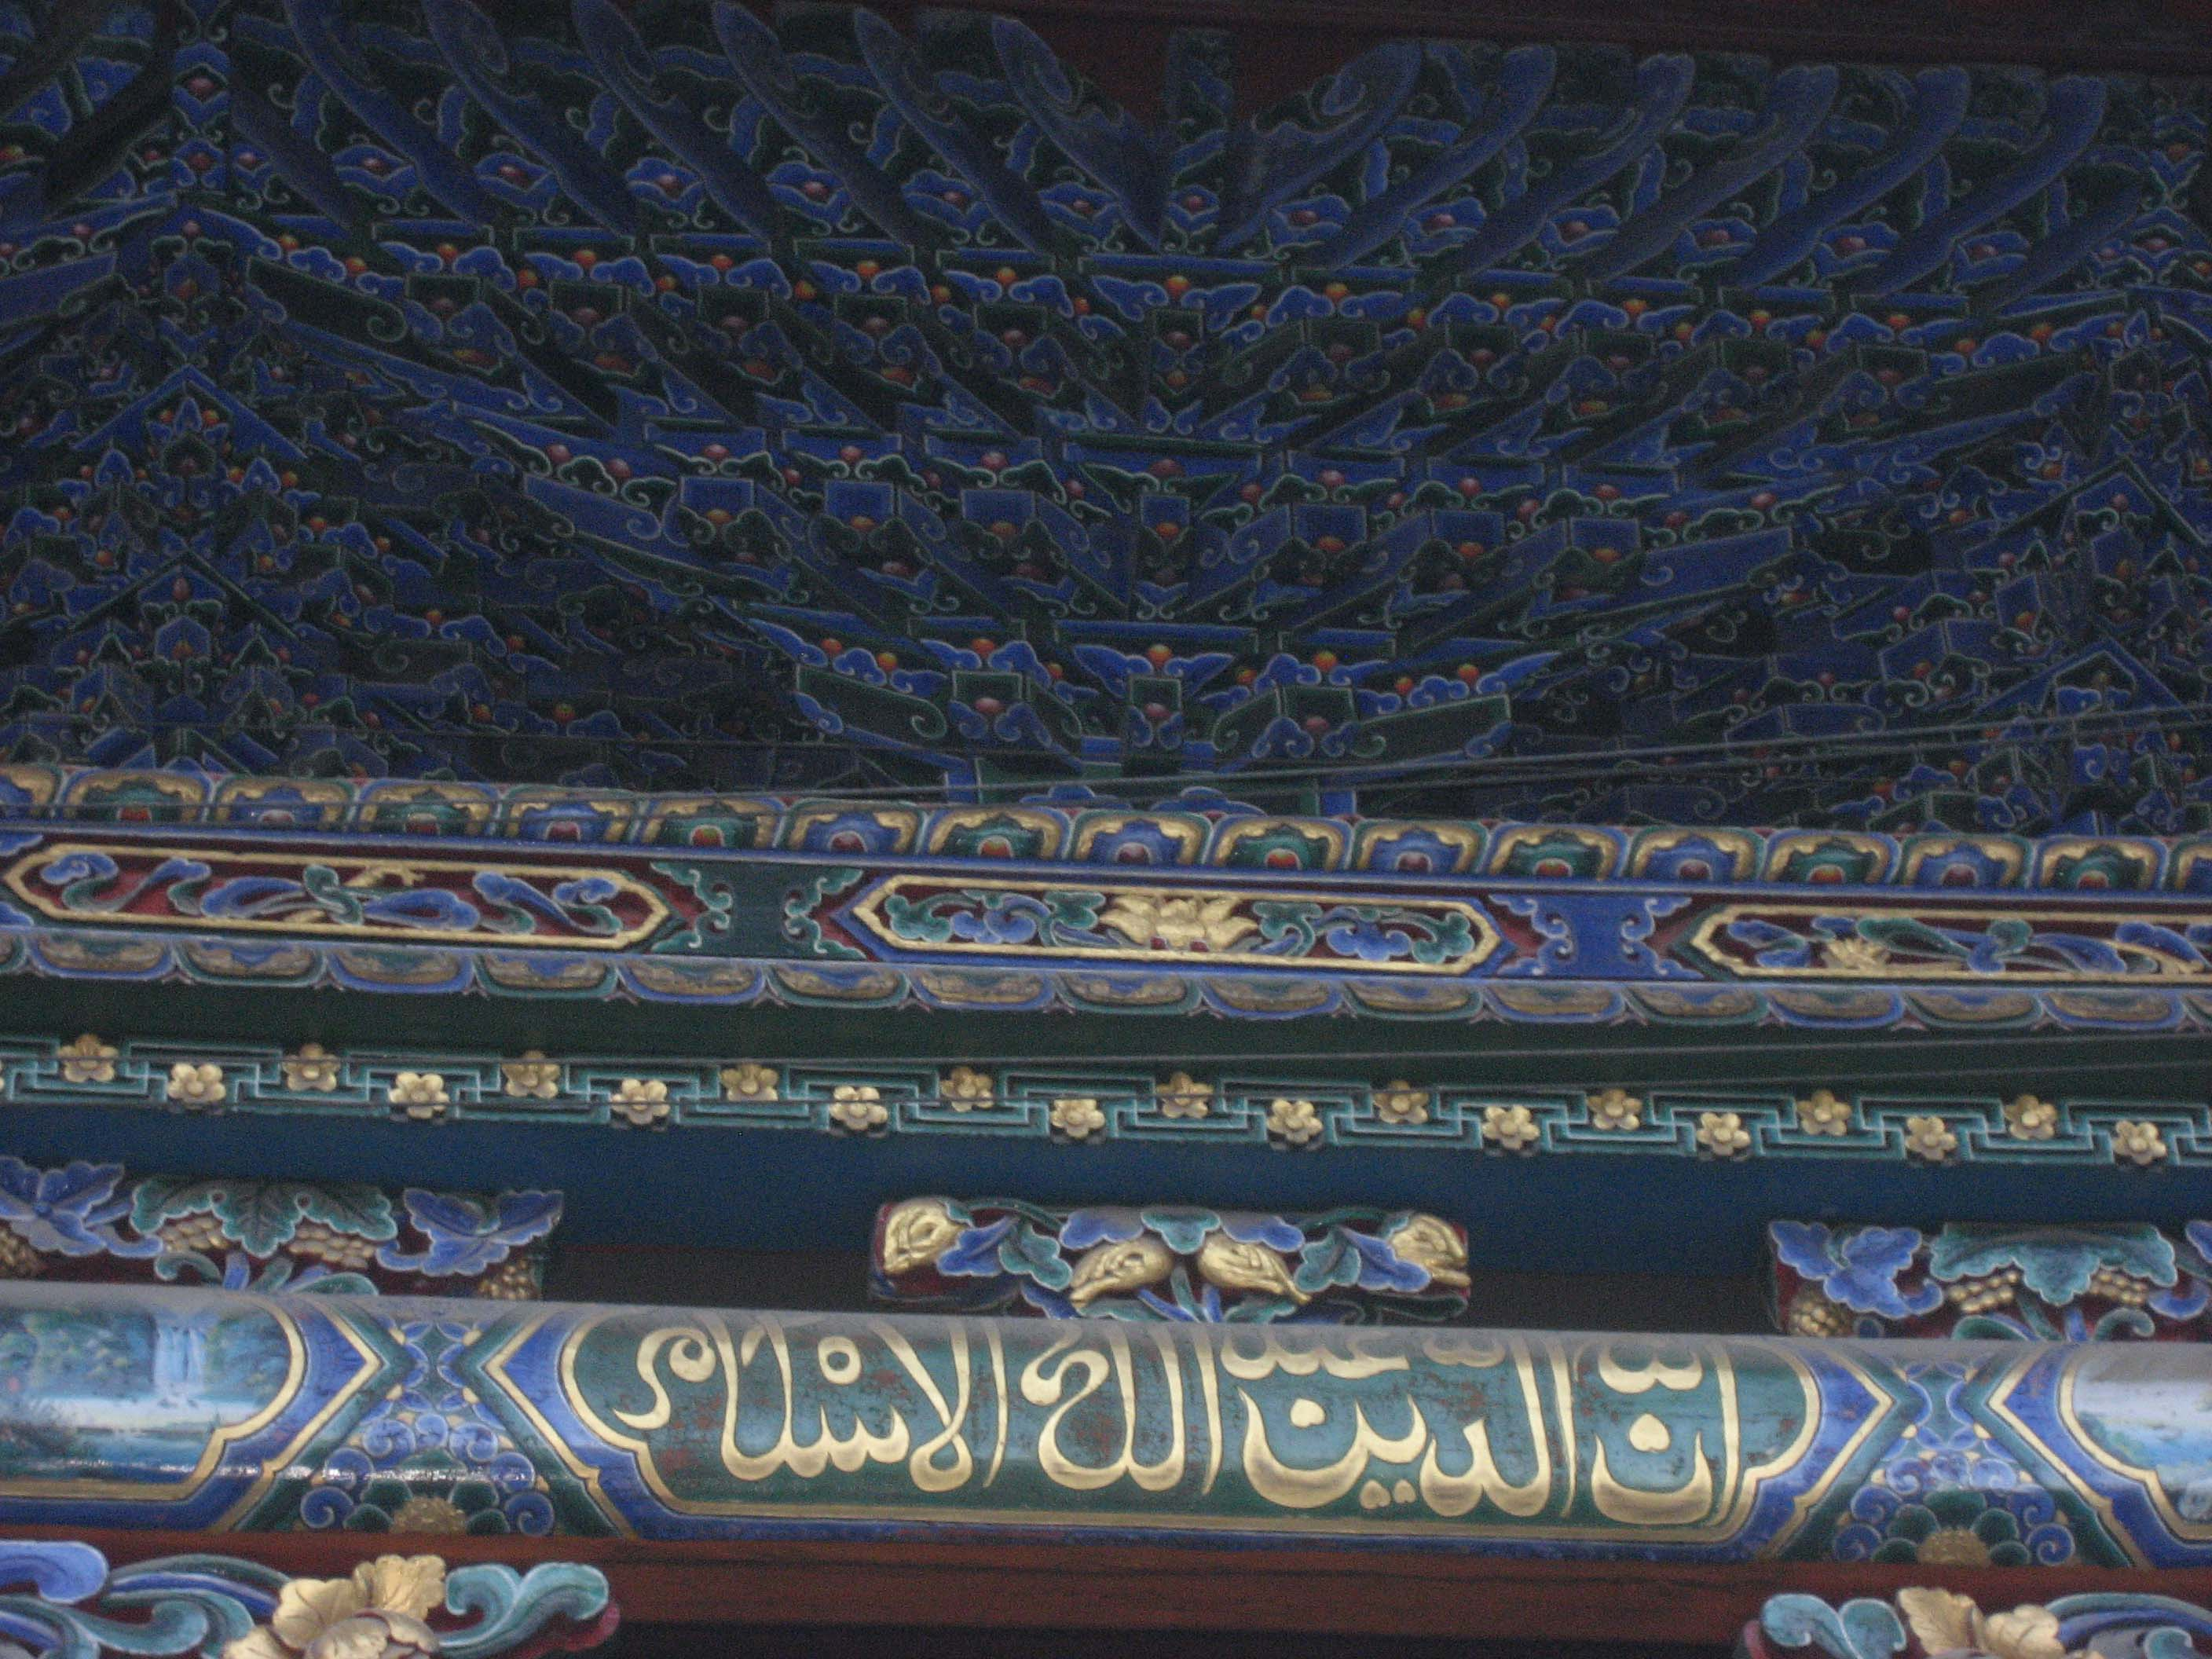 Xining Grand Mosque Details